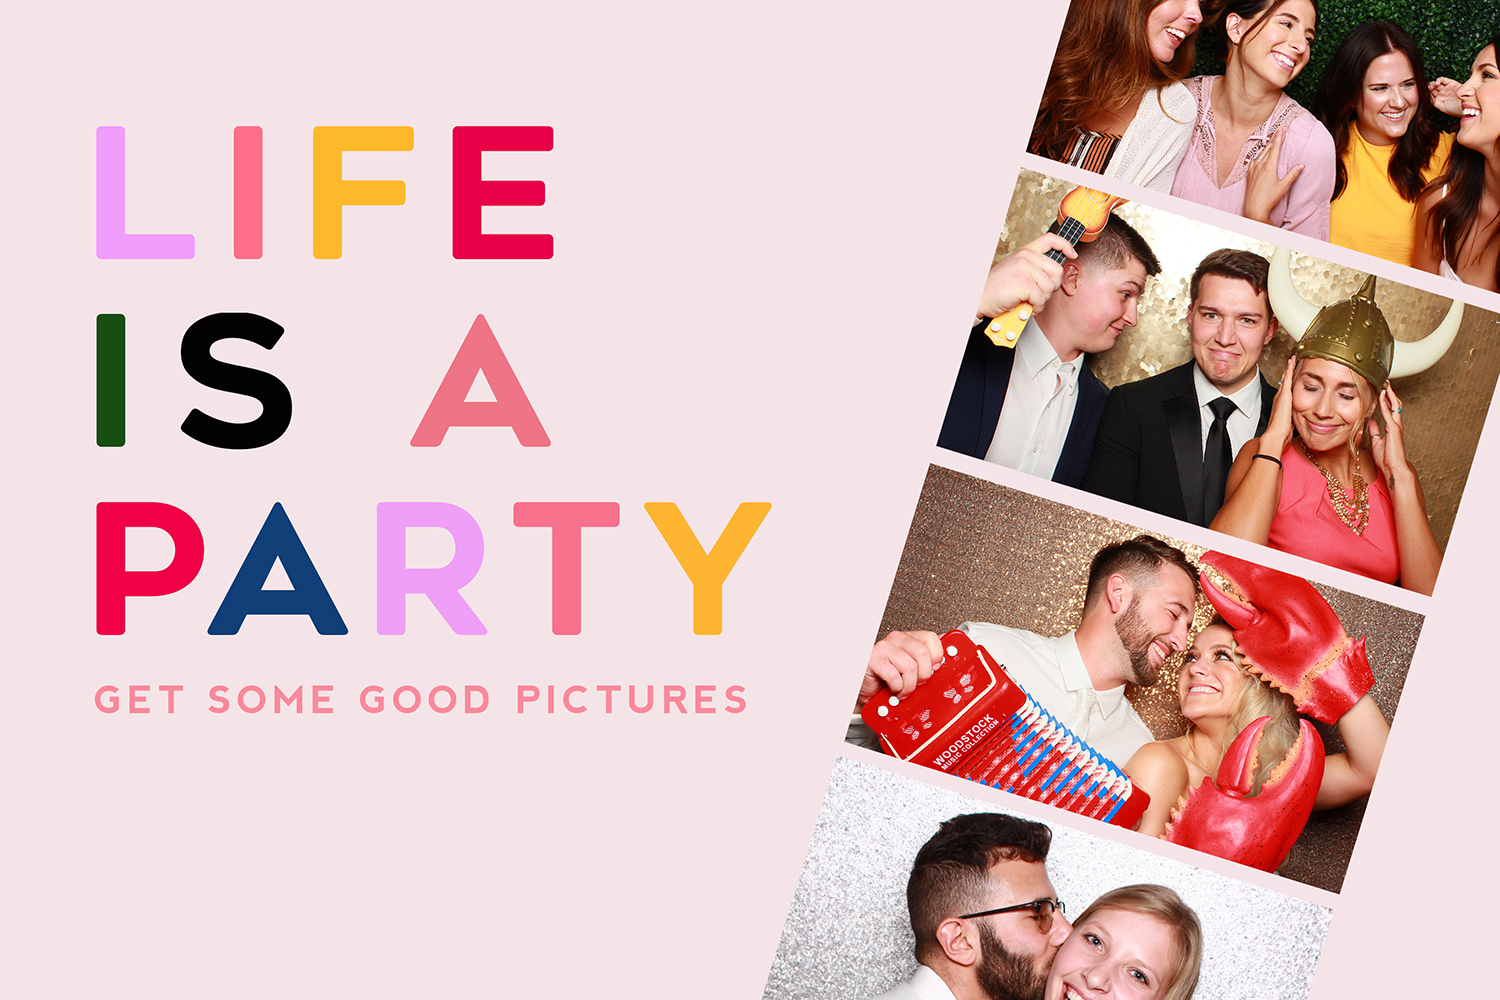 party picture banner.jpg